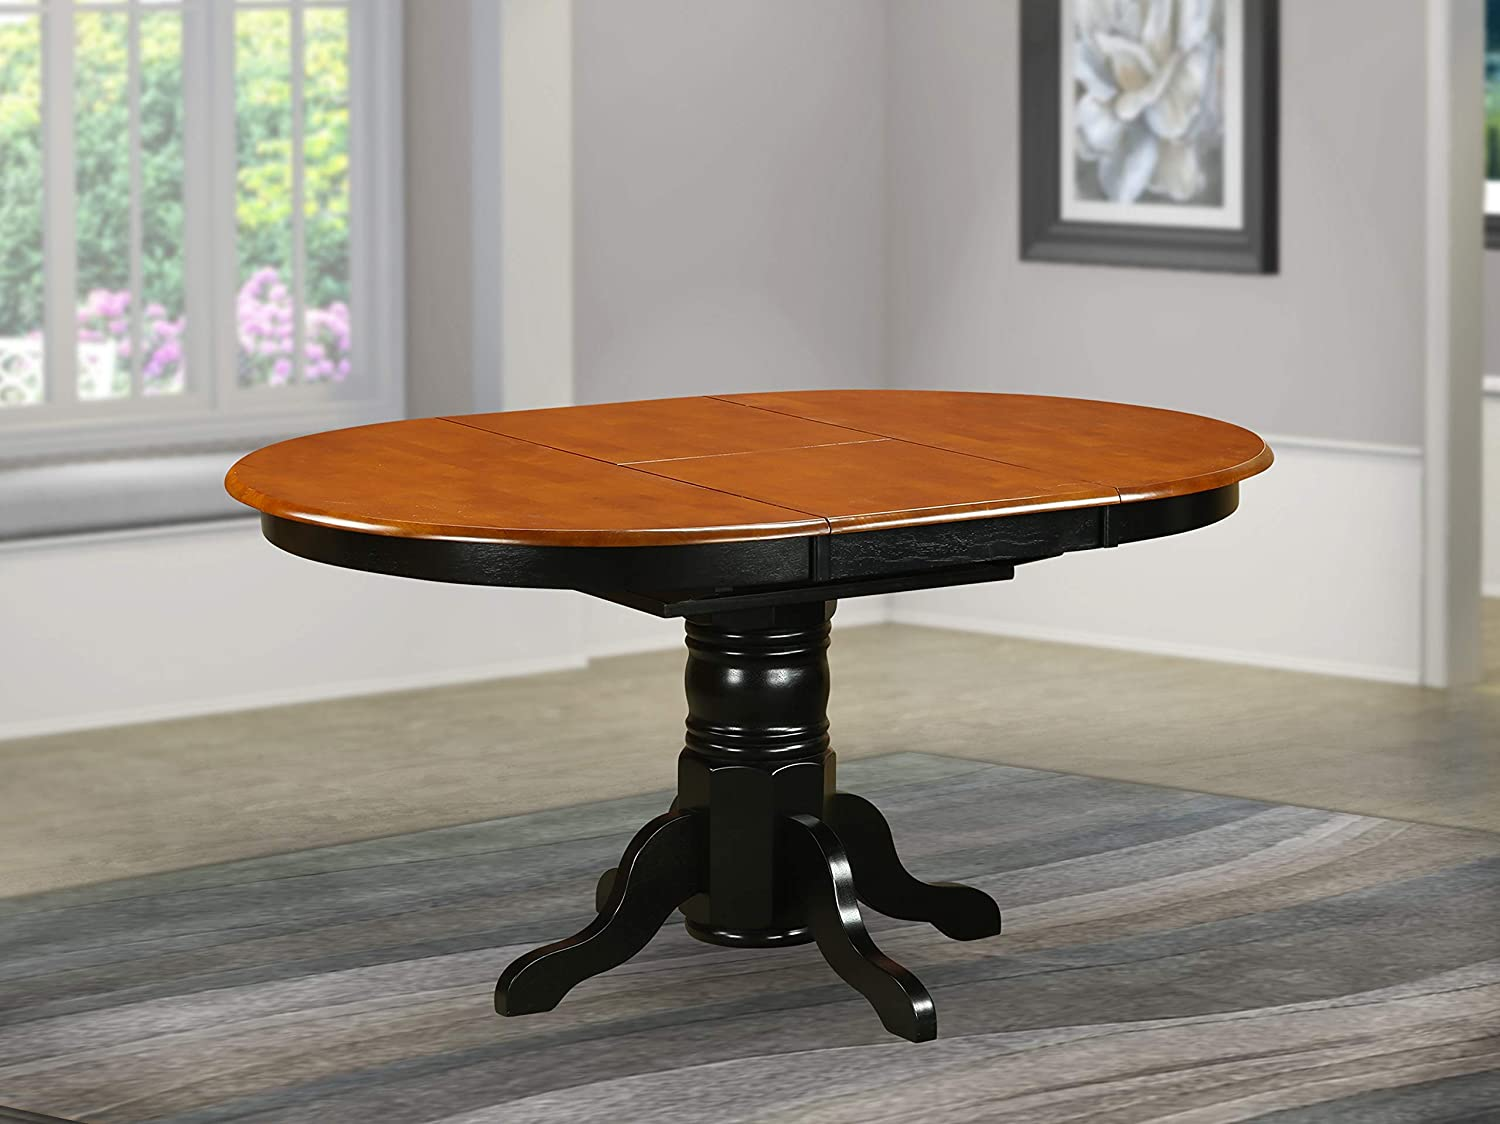 Amazon Com East West Furniture Butterfly Leaf Oval Table Cherry Table Top Surface And Black Finish Pedestal Legs Hardwood Frame Kitchen Table Furniture Decor